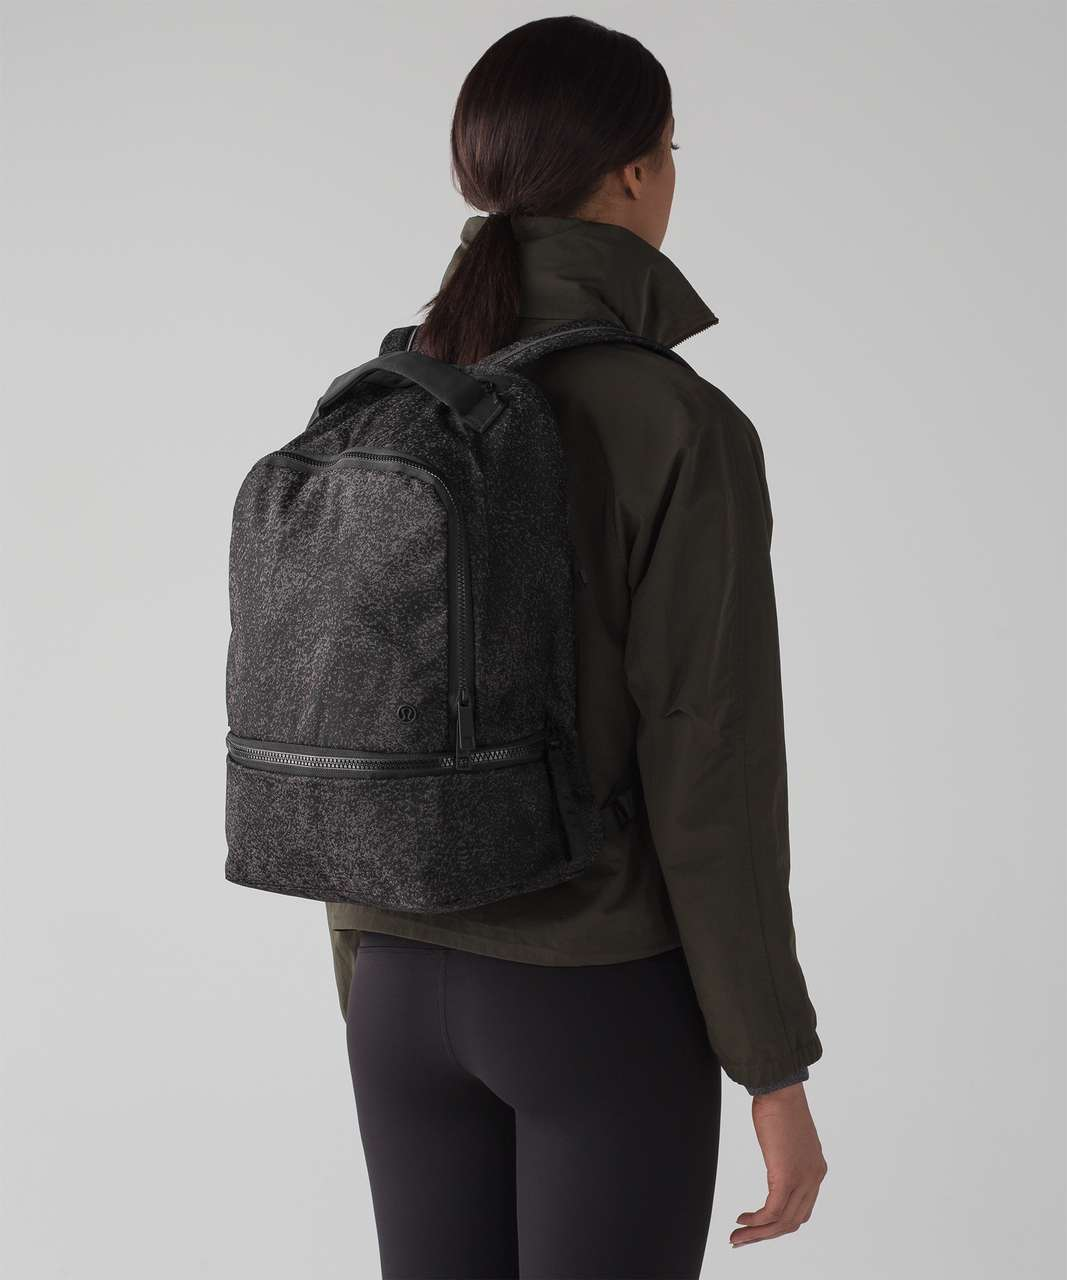 Lululemon City Adventurer Backpack 17L - Glo Wild Black Reflective